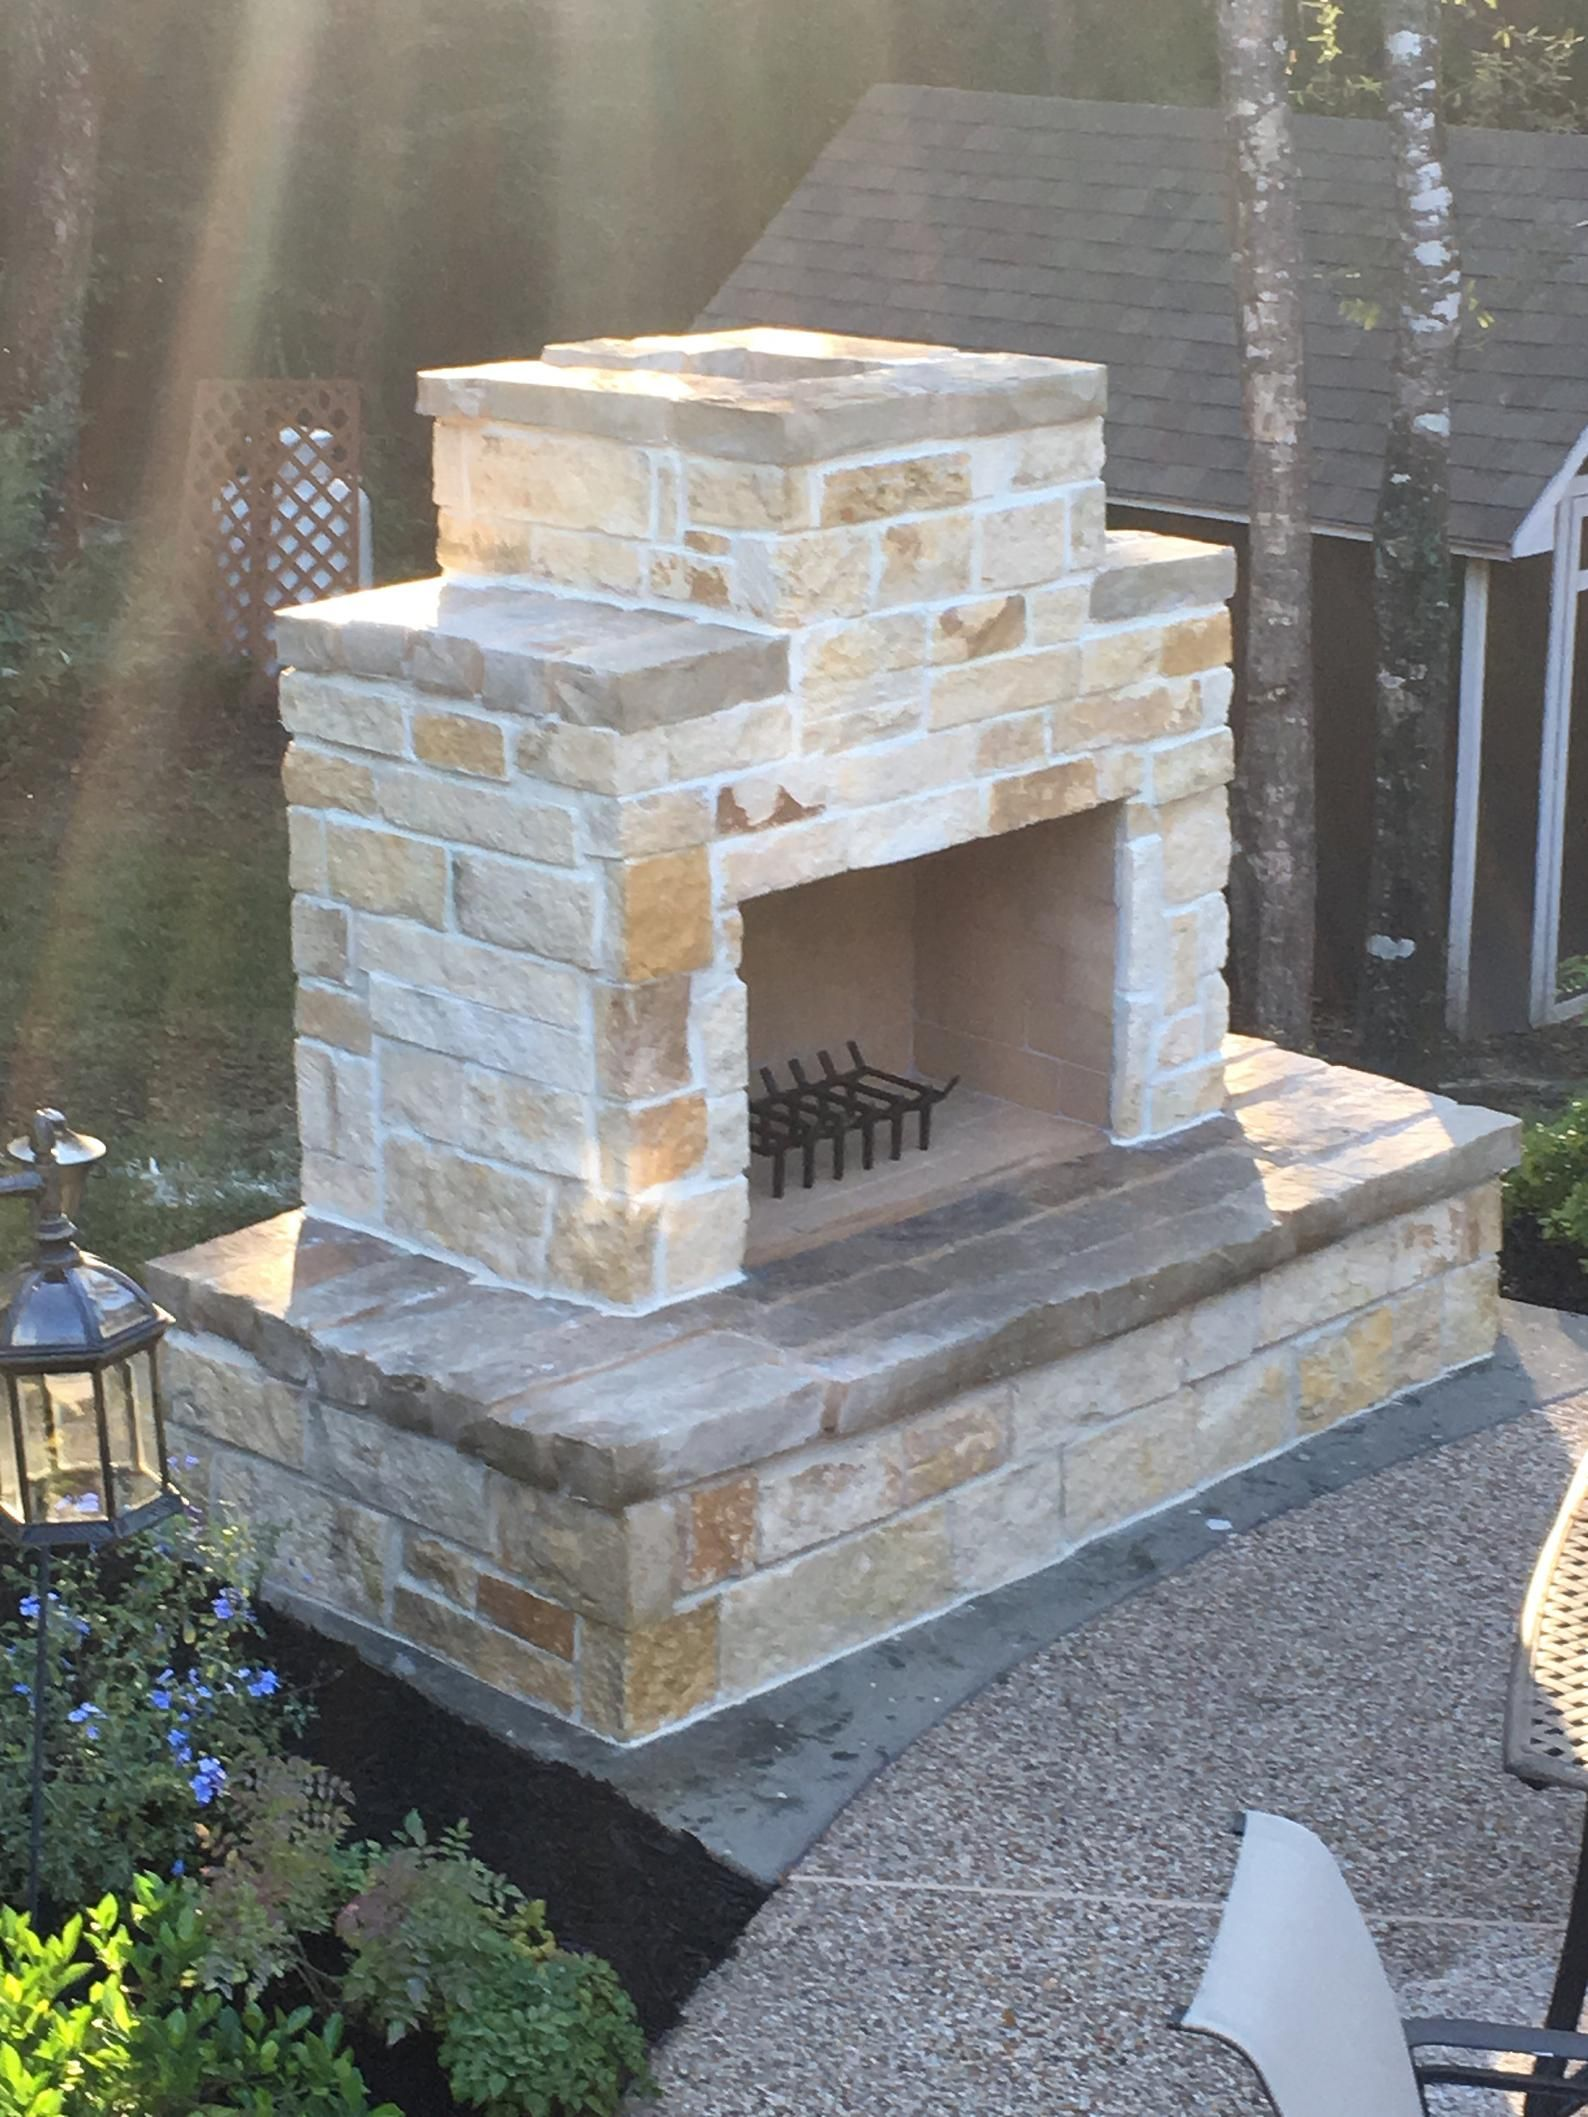 Pima Ii Diy Outdoor Fireplace Construction Plan Diy Outdoor Fireplace Outdoor Fireplace Designs Outdoor Fireplace Patio